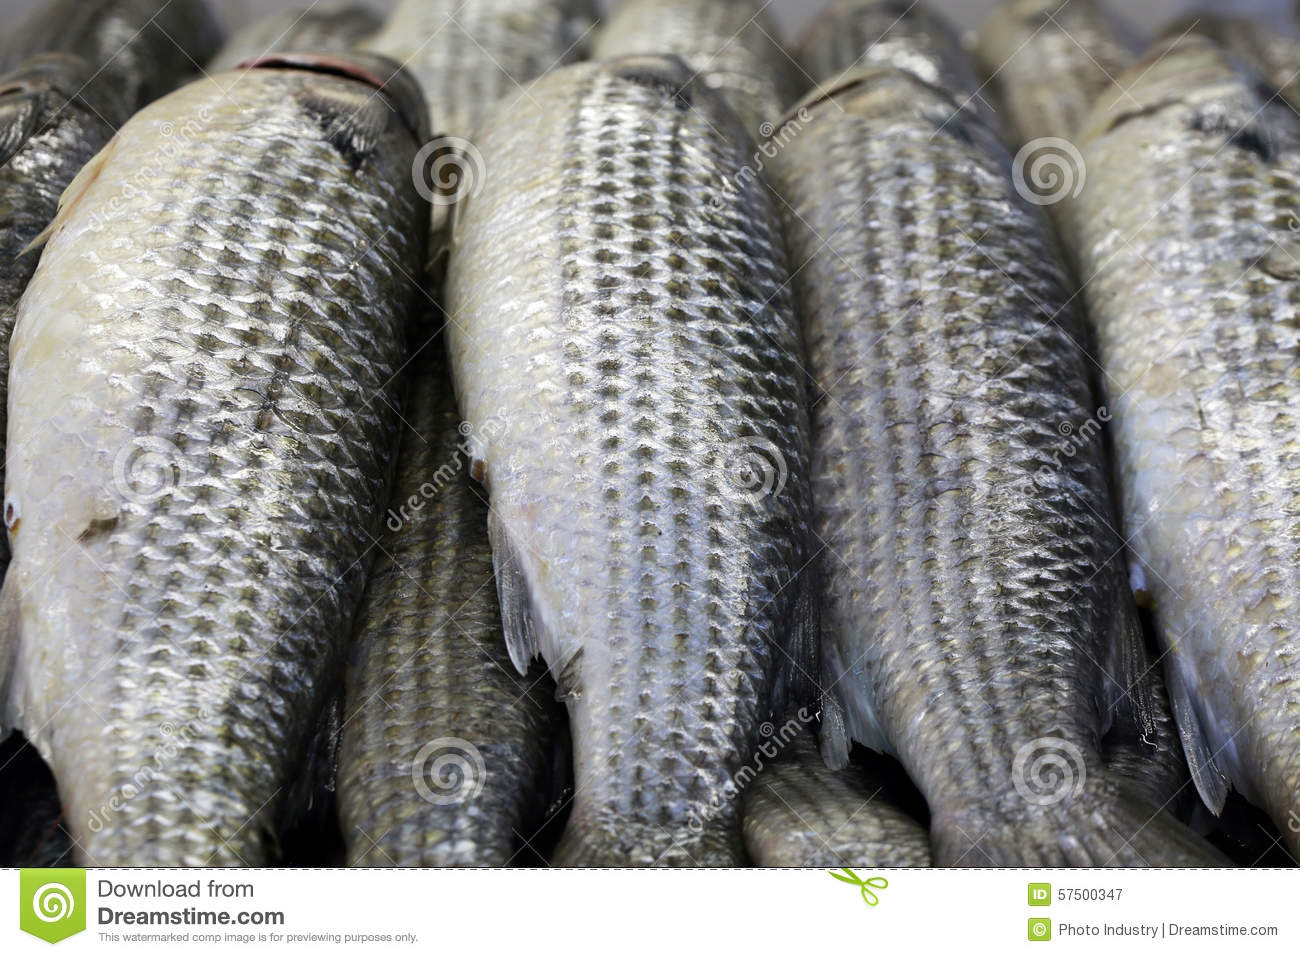 how to cook grey mullet fish